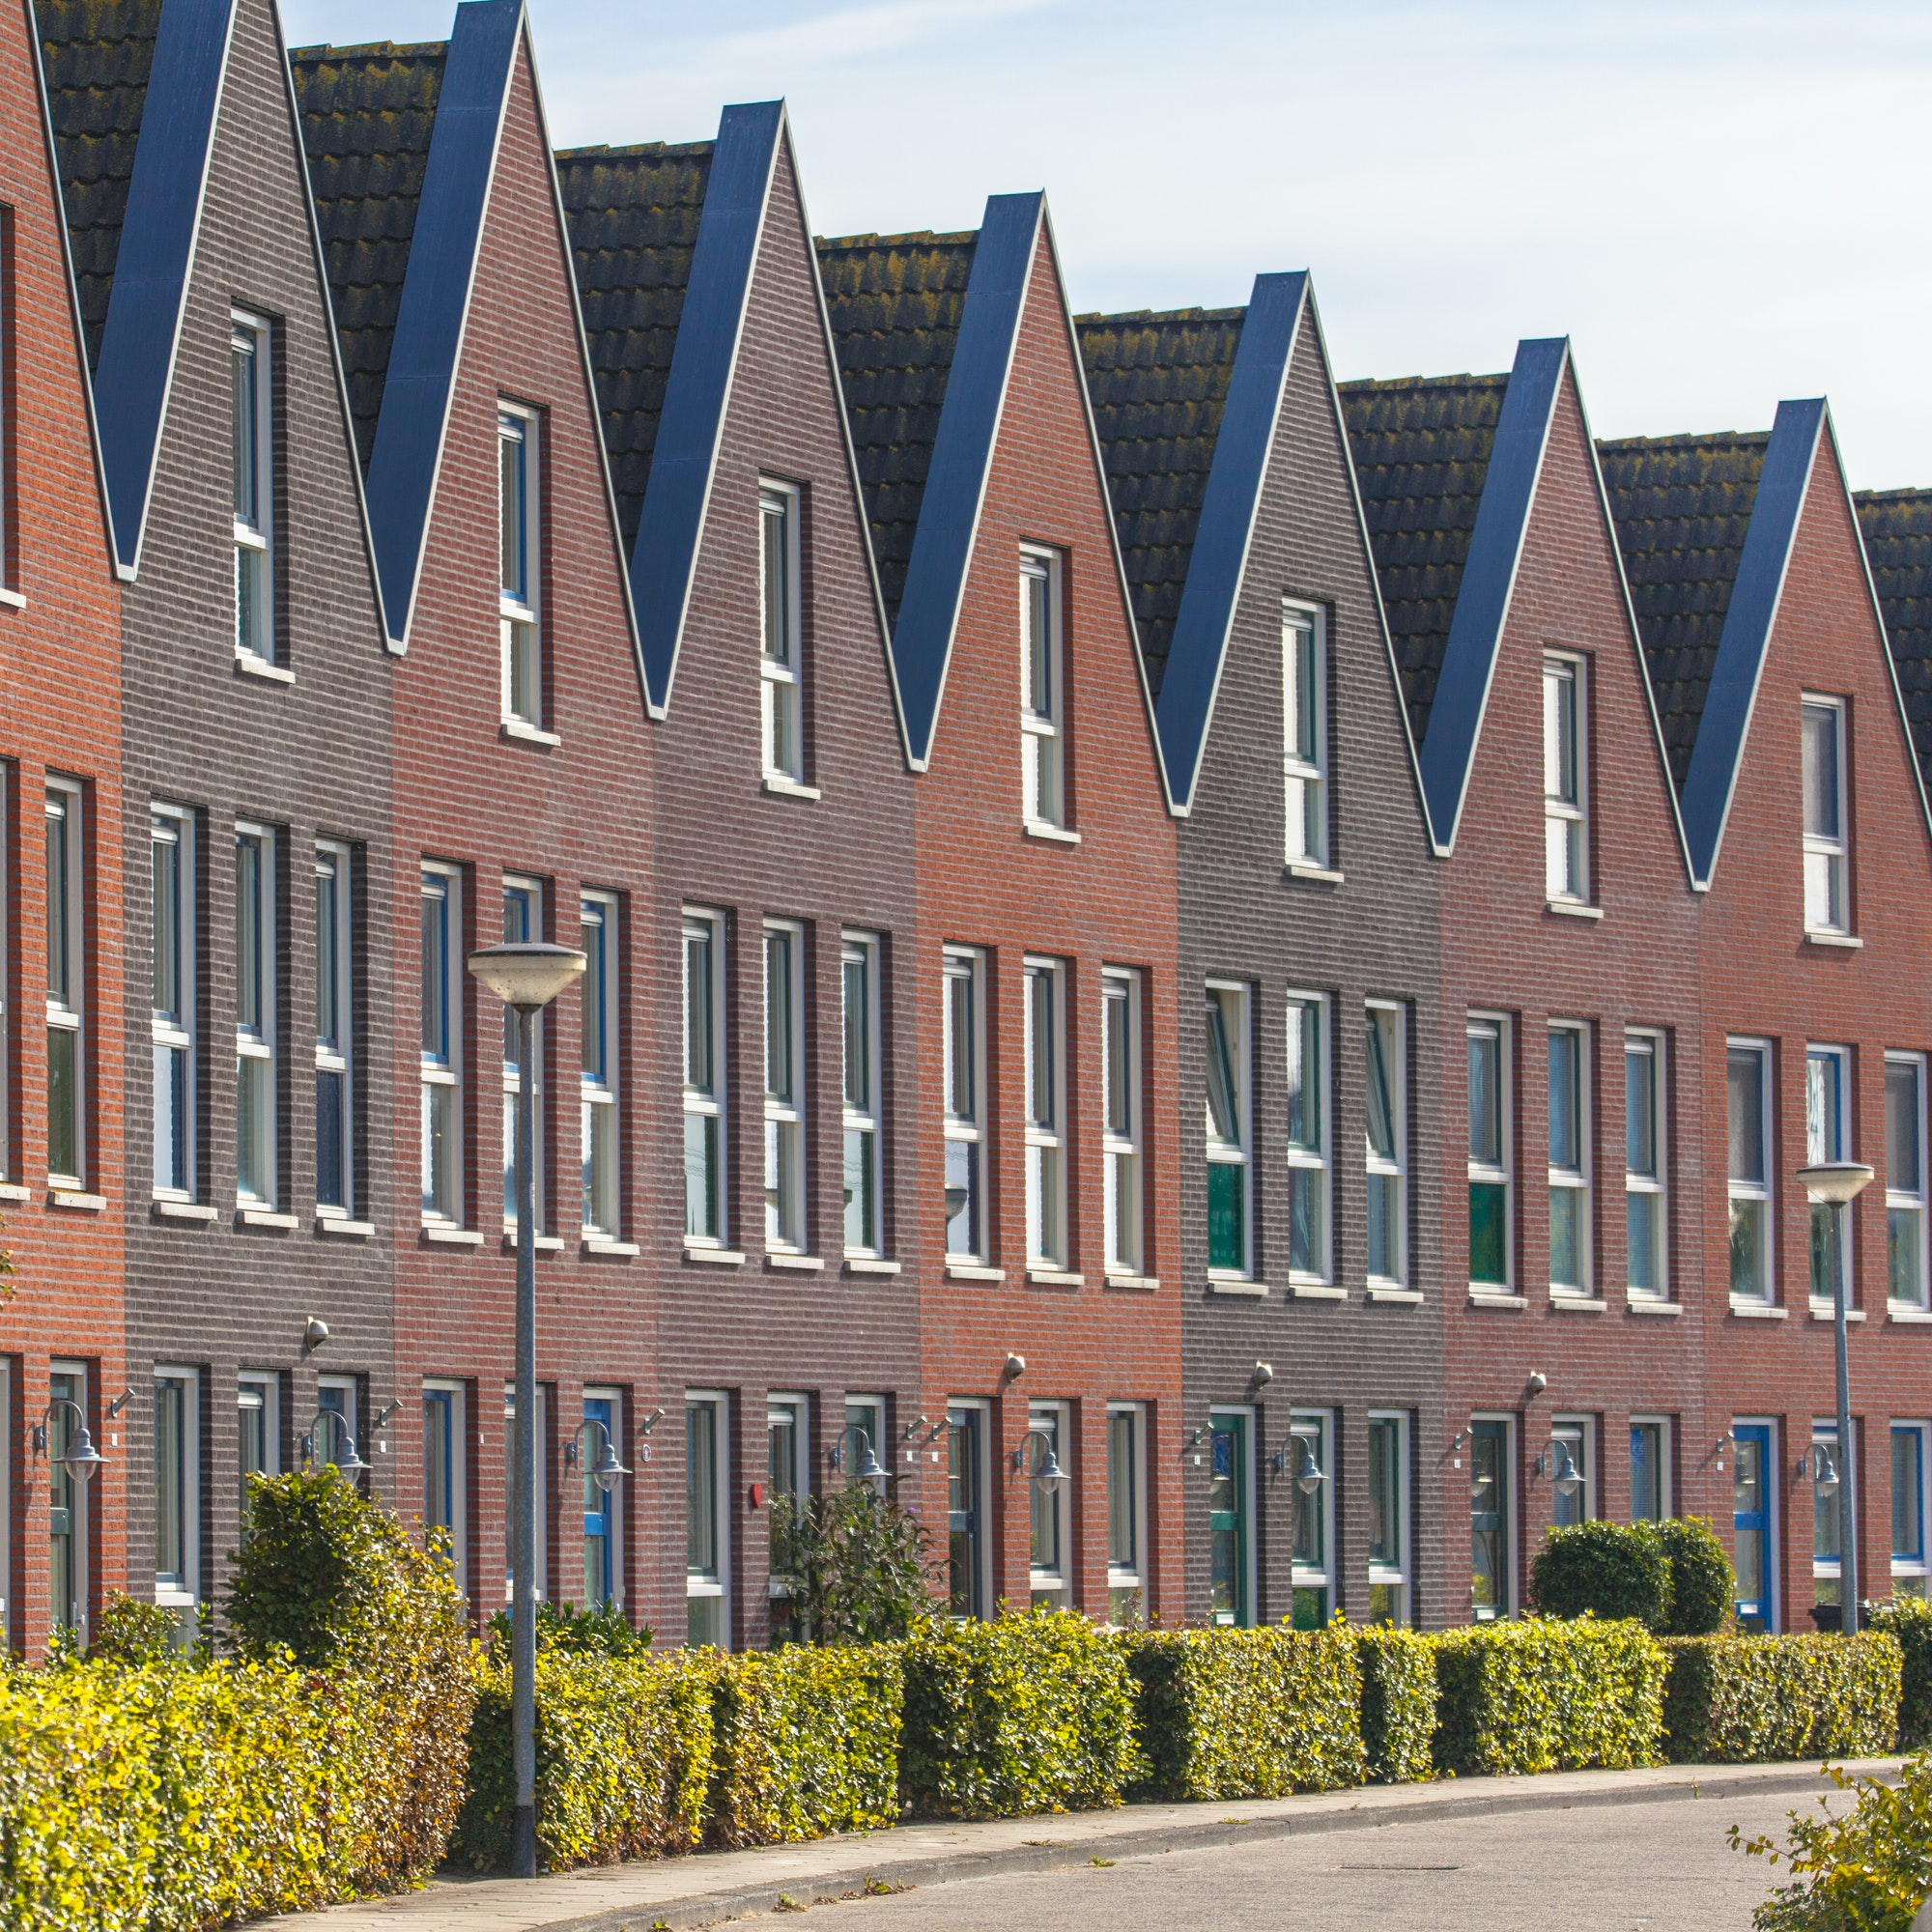 Houses in a Street with Hedgerows in Groningen